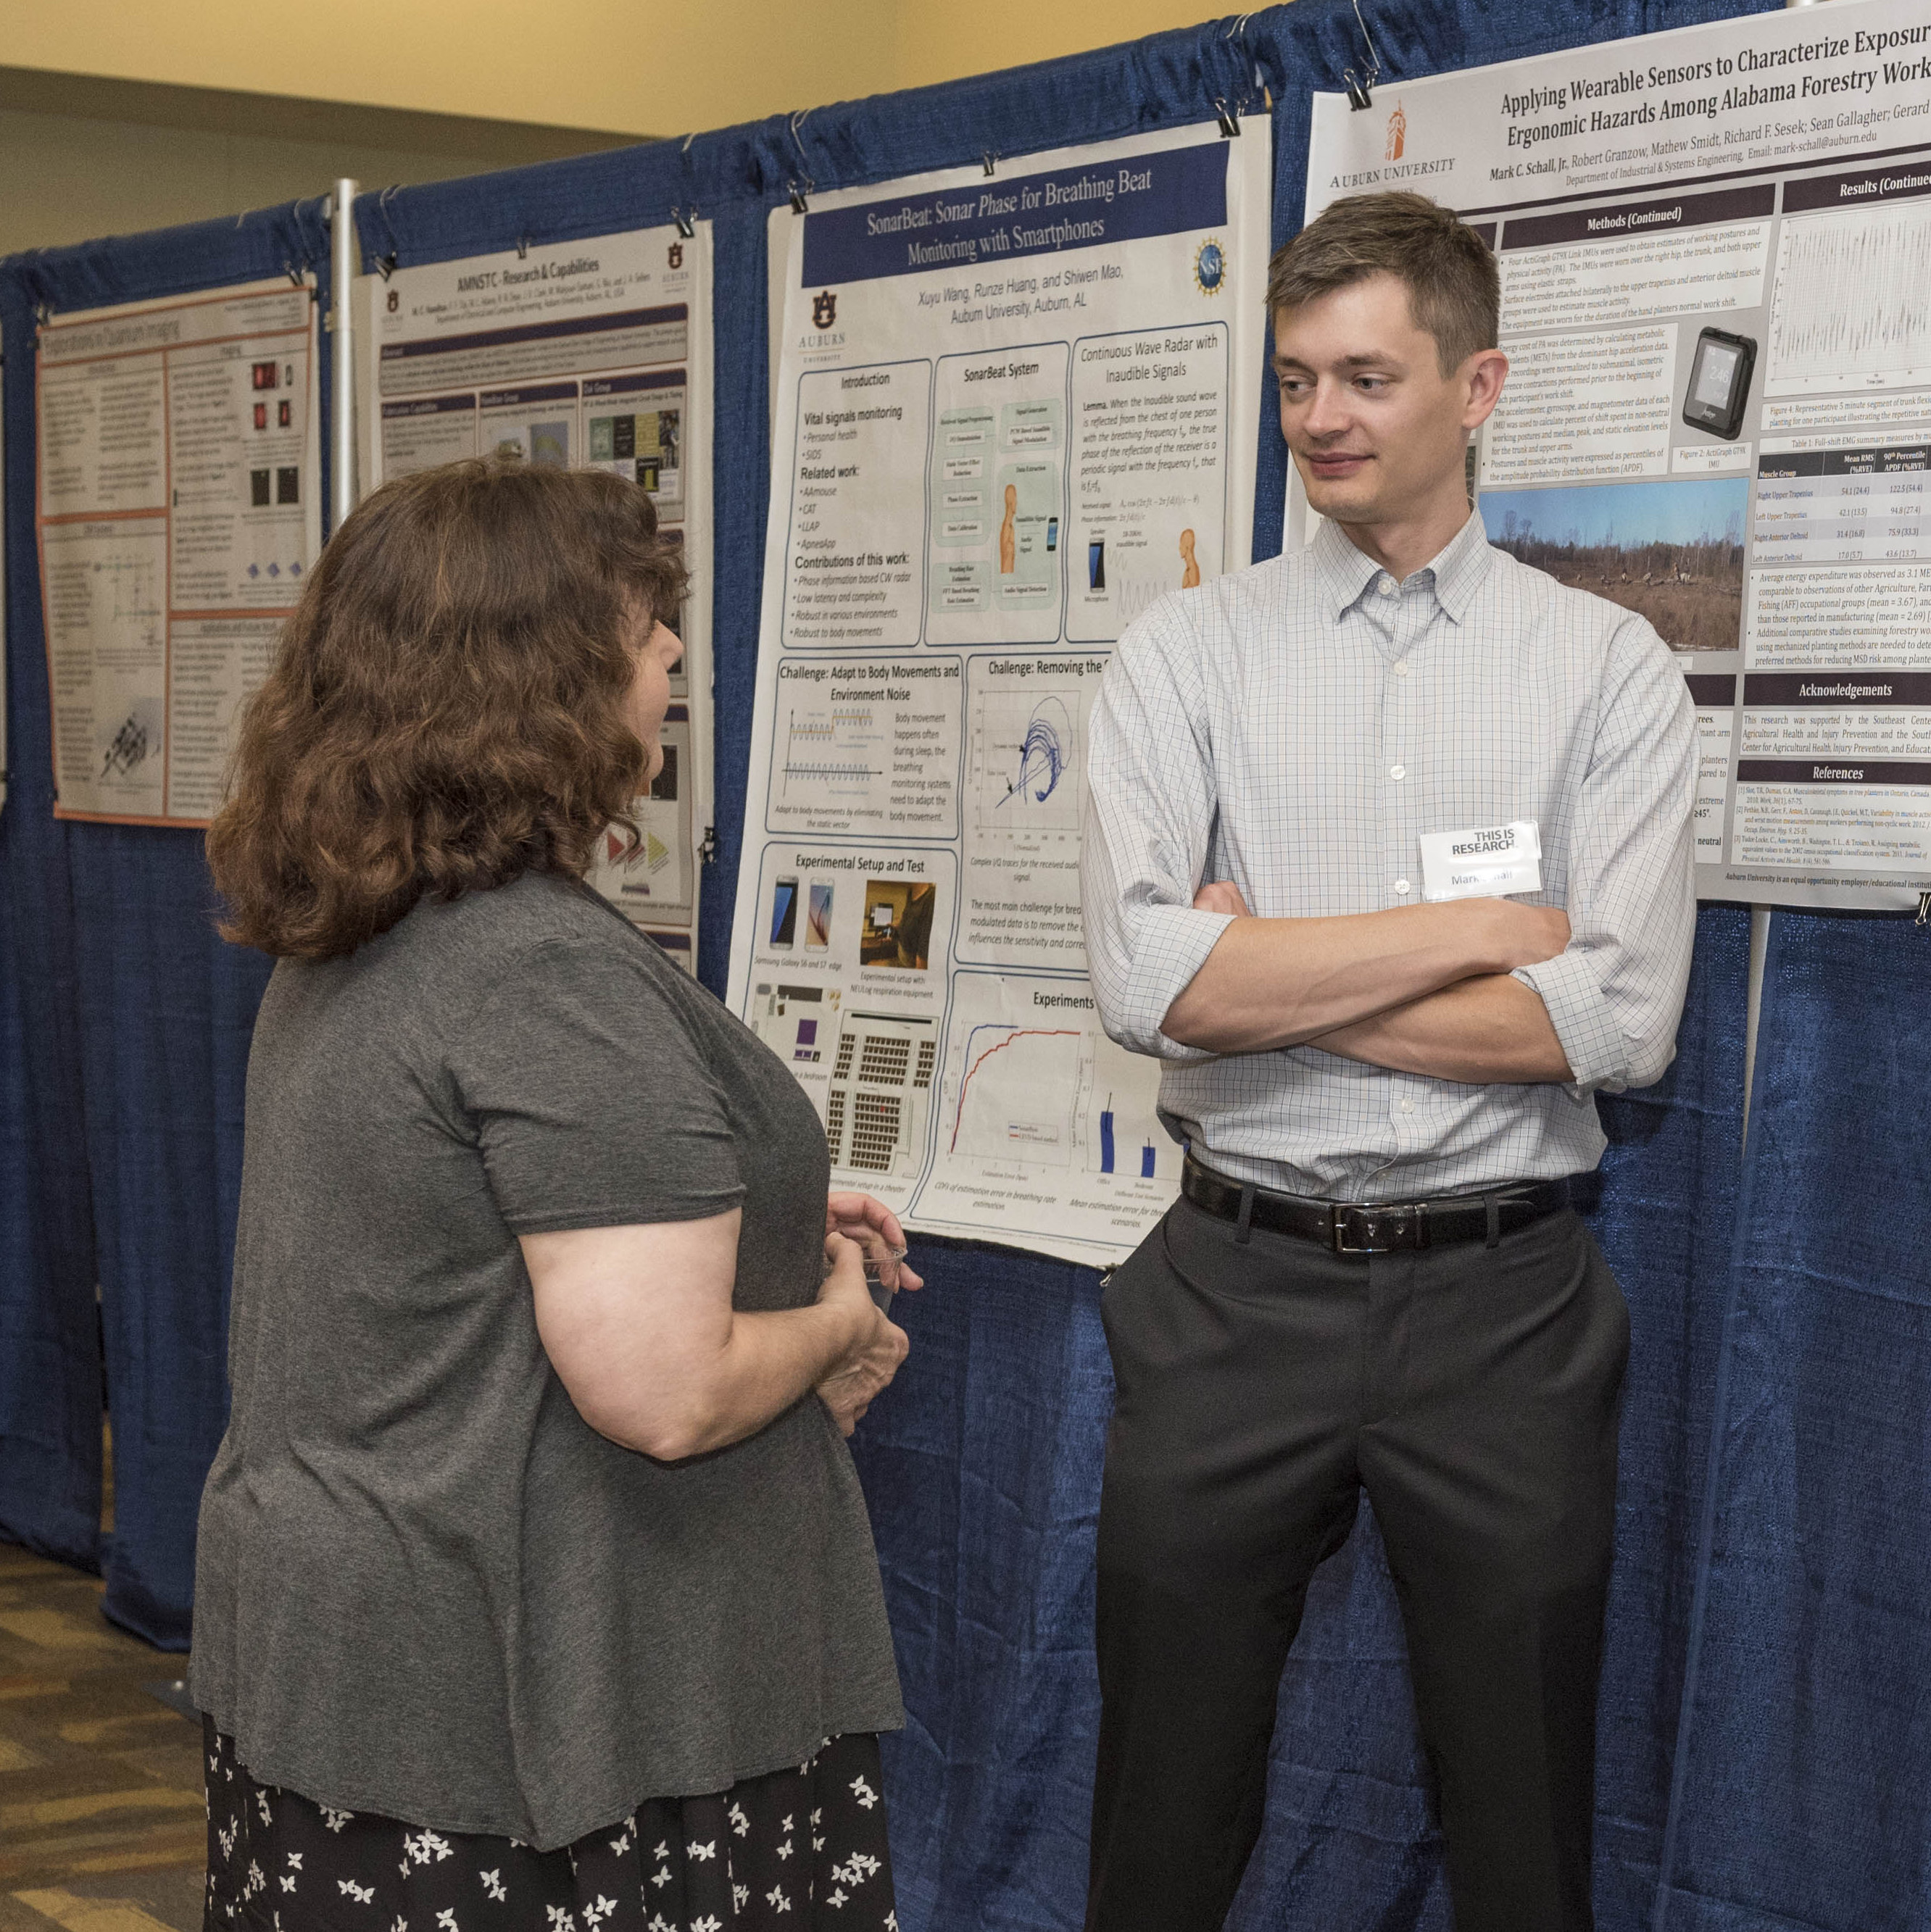 Auburn Research Faculty Symposium presenter discussing poster